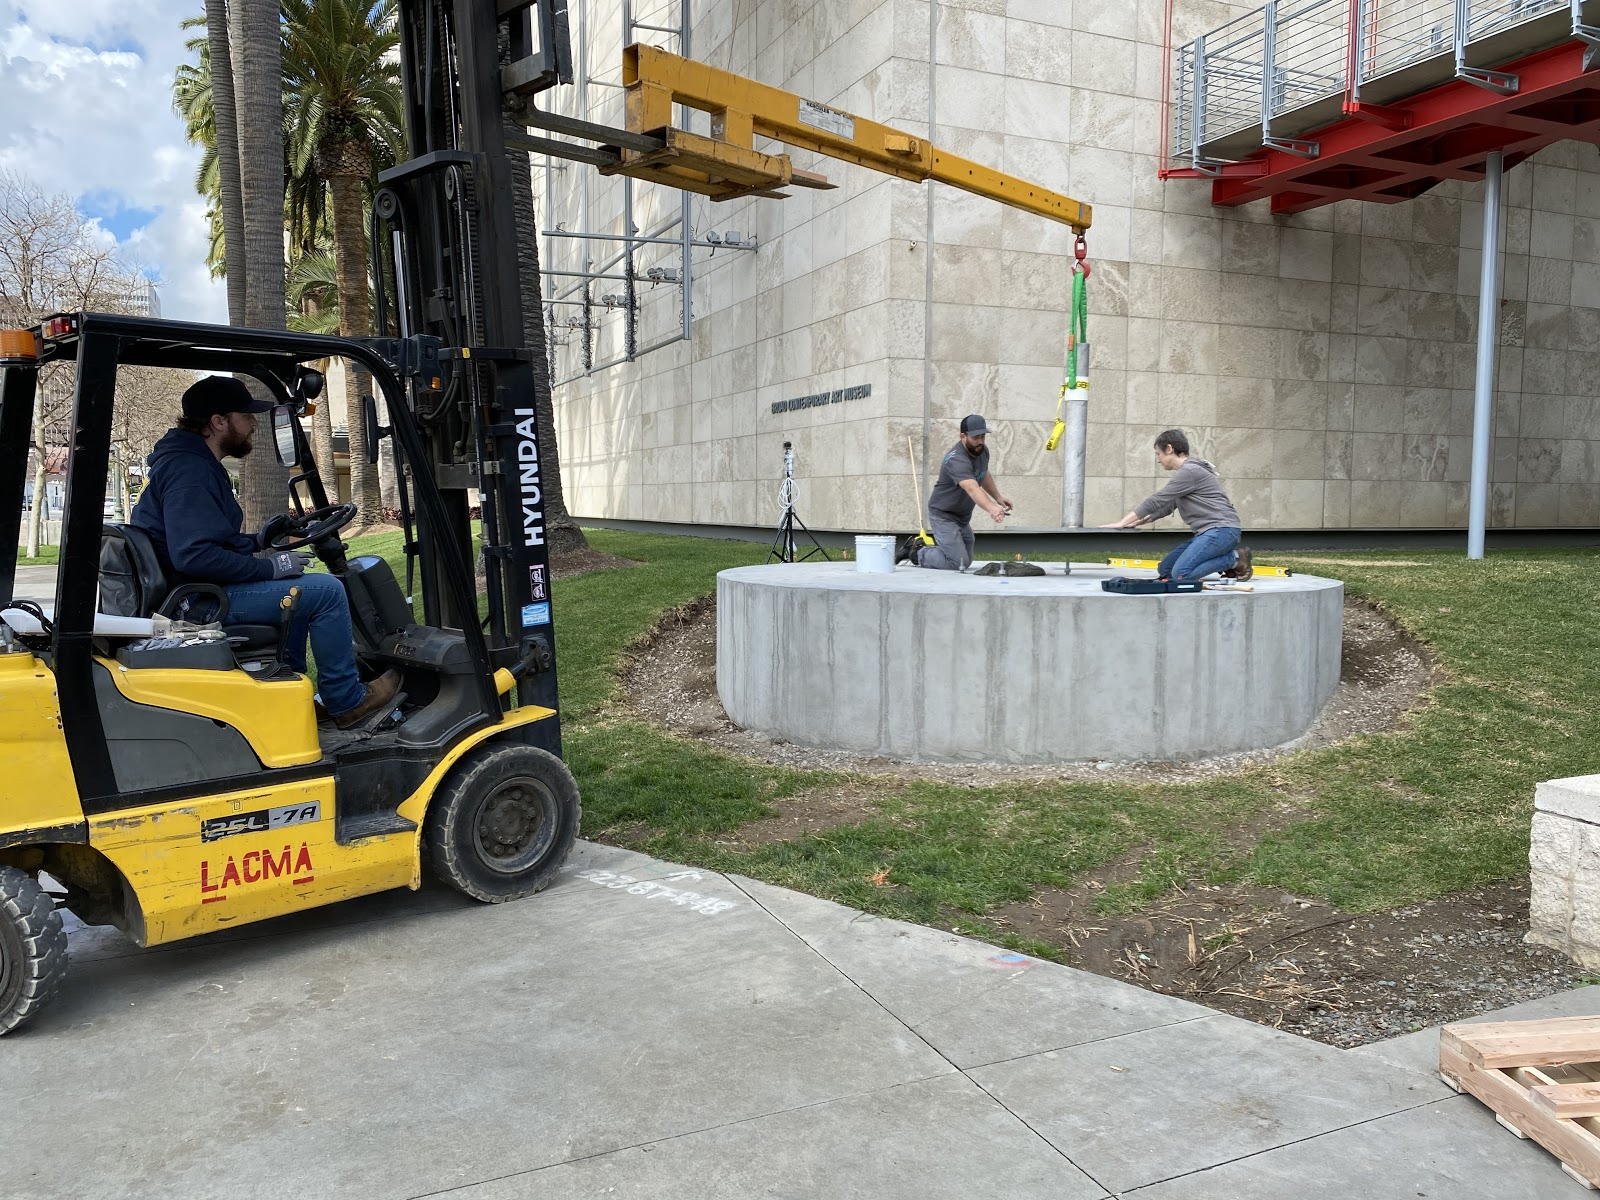 The day before the sculpture arrived, we installed its mount onto the concrete pedestal. We worked closely with Manager of Gallery Construction Jeff Young, to embed anchor bolts in the exact locations needed in the concrete pad as it was poured. From left to right Jordan Mesavage, Luke Boehnke, and Julia Latané. Photo by Elspeth Patient